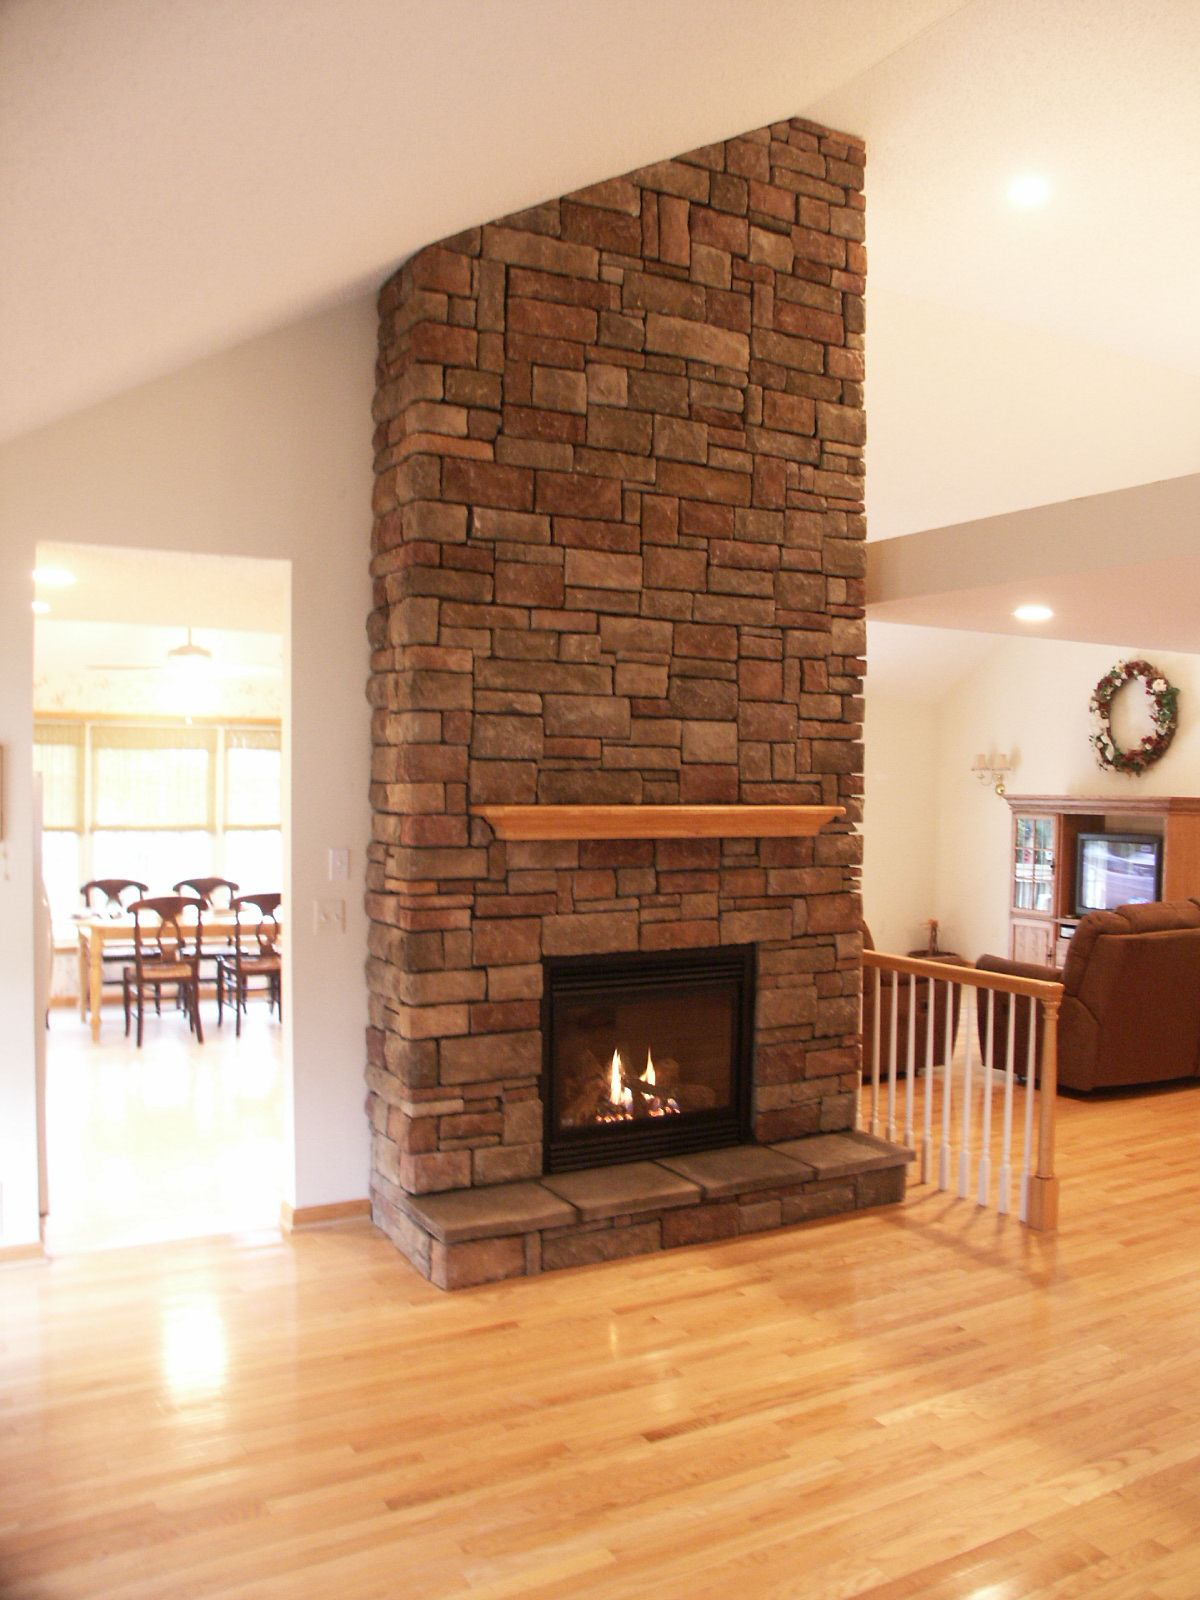 Interior design a new gas beautiful fireplaces stone Brick fireplace wall decorating ideas